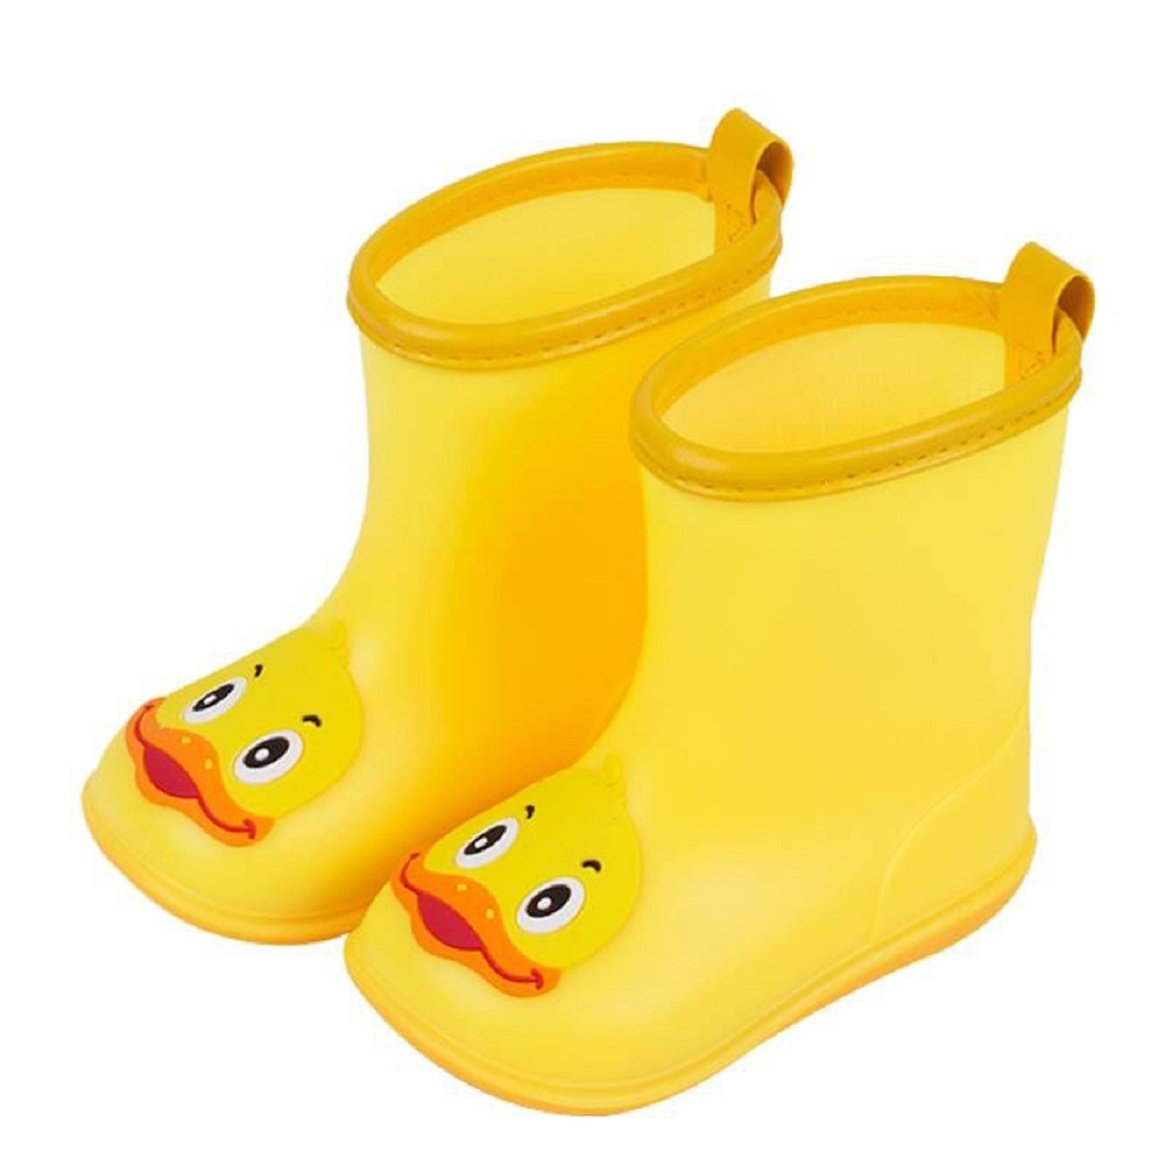 Baby Raincoat, Cute Duck Head Foldable UFO Raincoat for Kids (4-4.5T, Duck Rain Boots) by Coerni (Image #1)